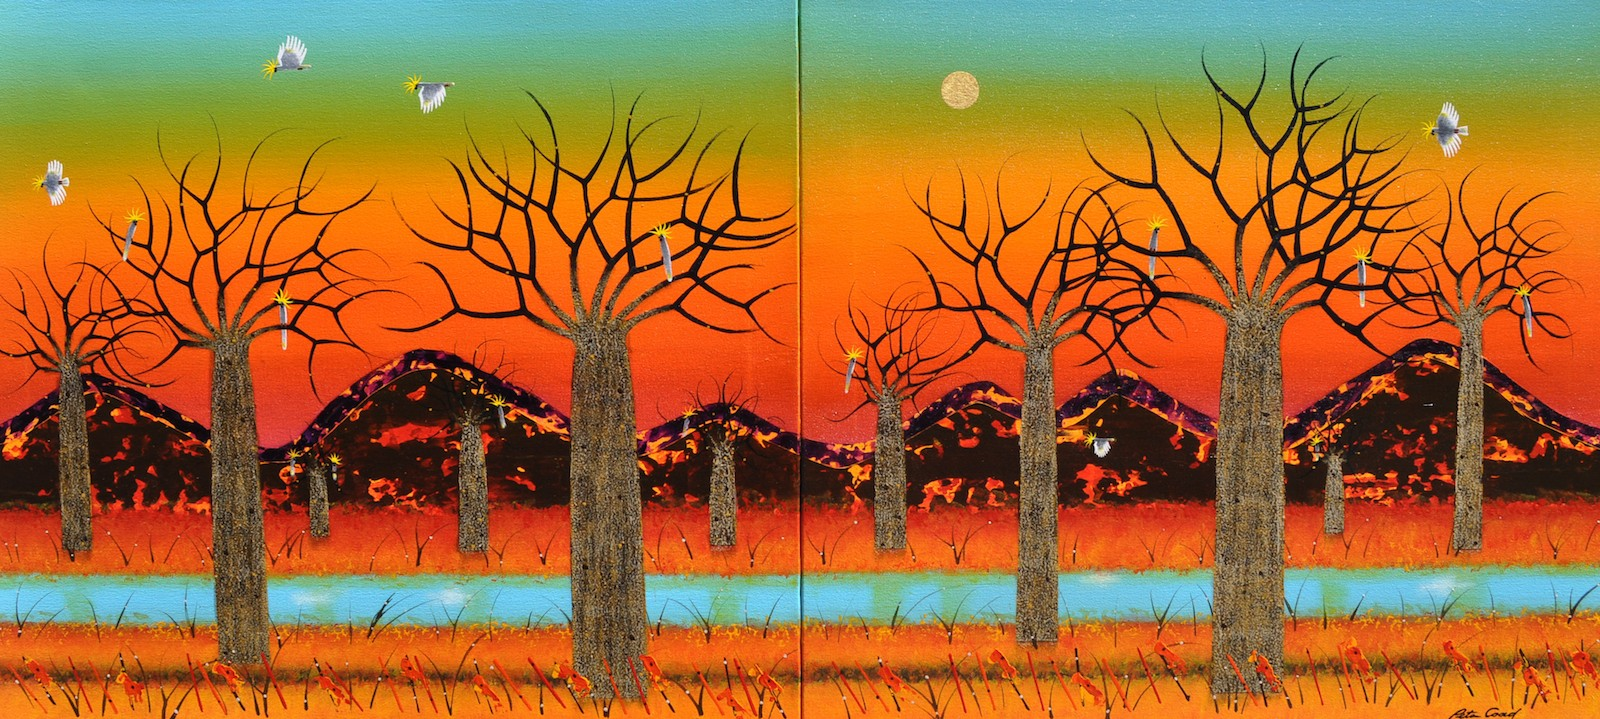 Summer Landscape - Kimberley 1 and 2 (Diptych) 90cm x 200cm